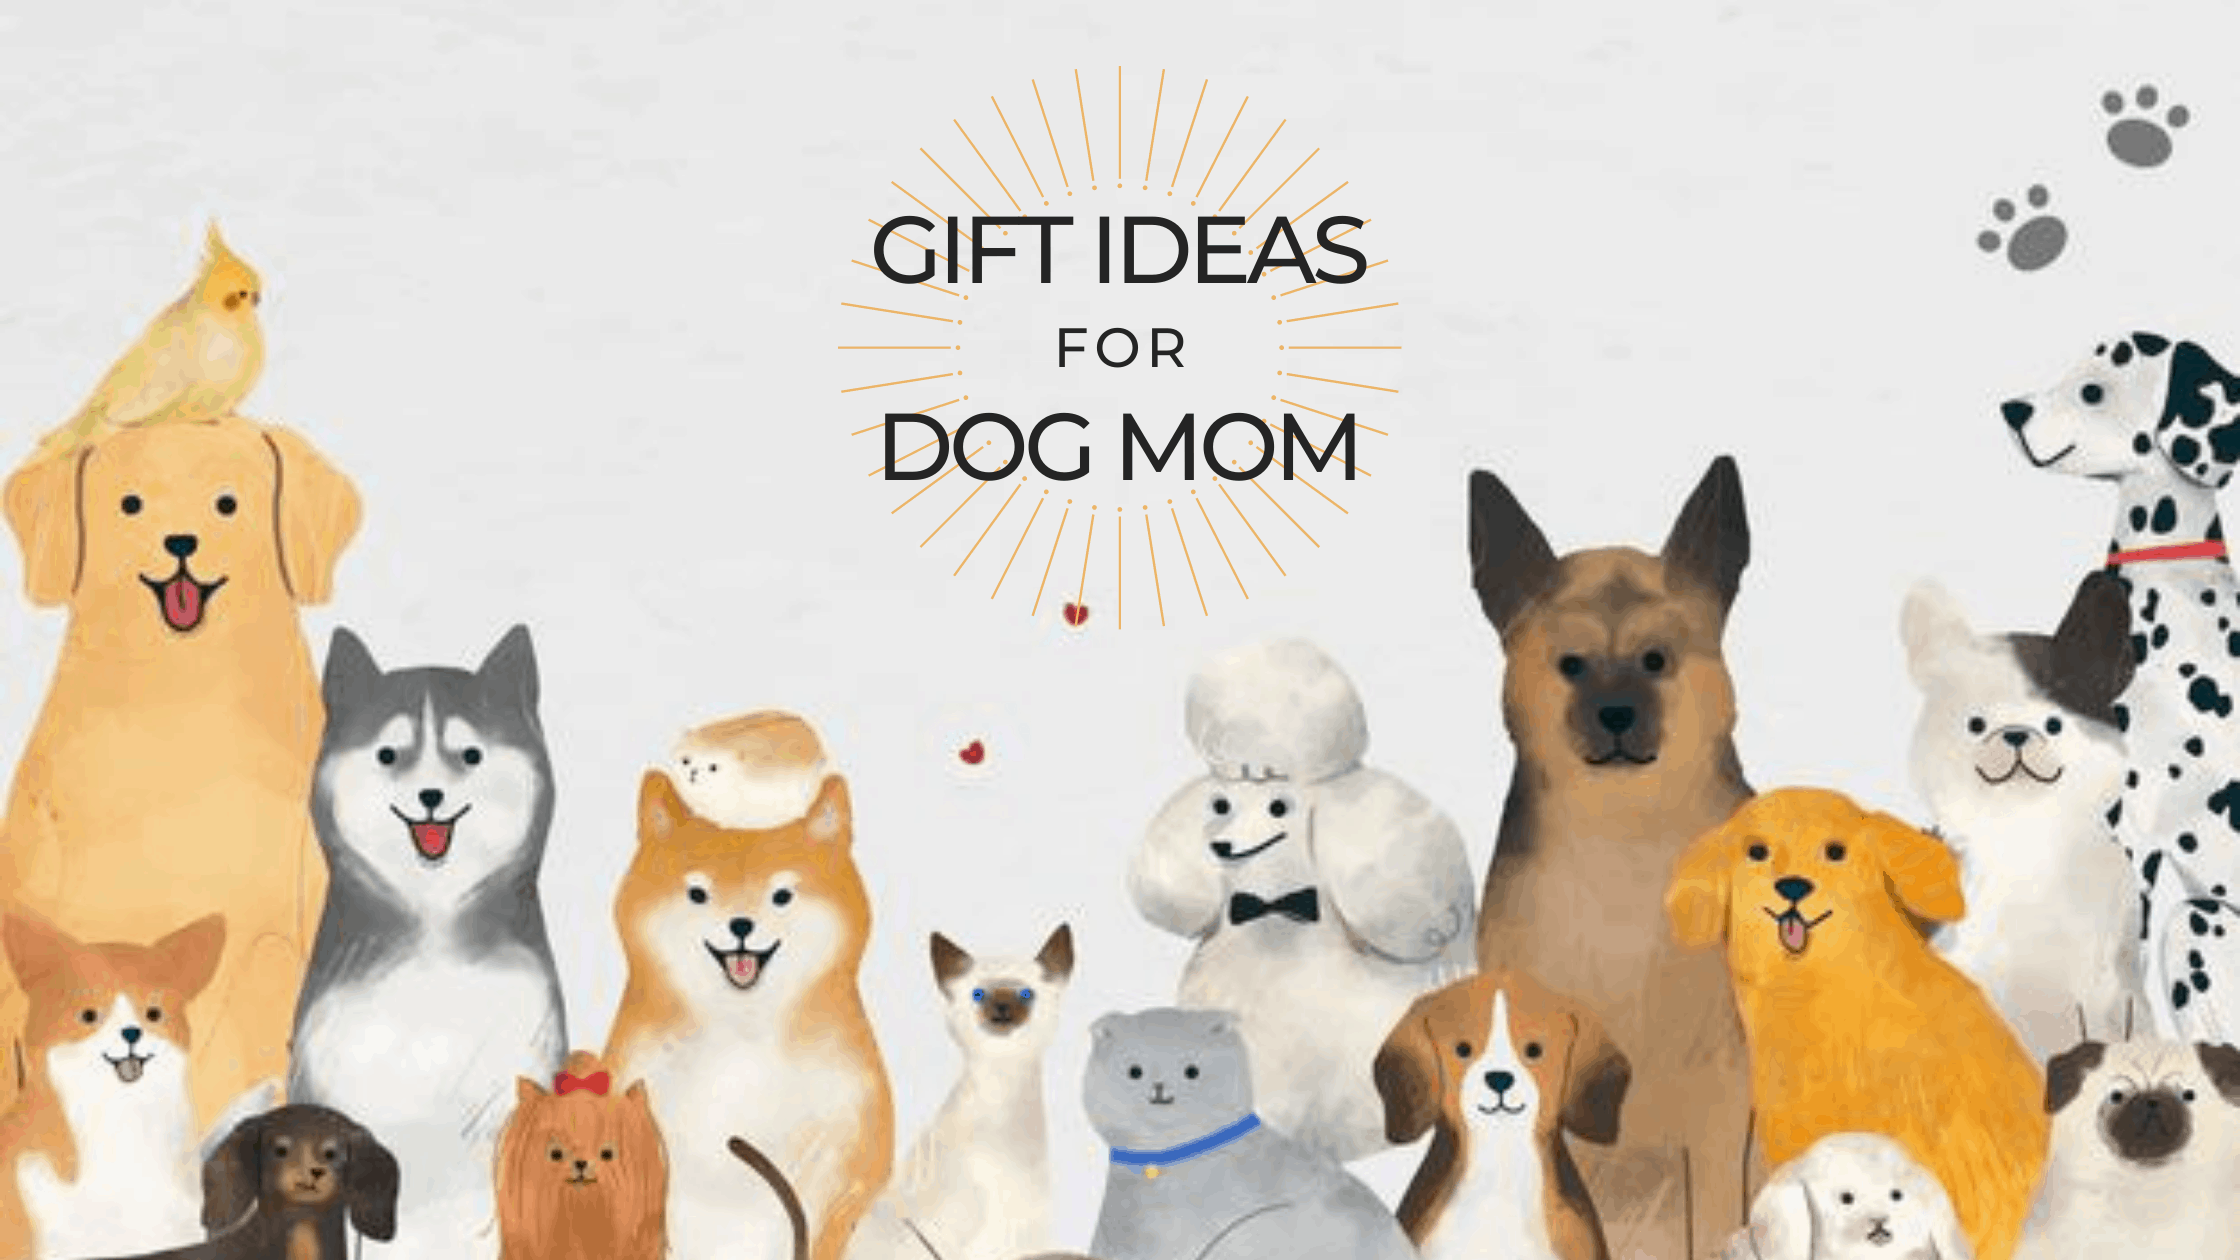 45+ Best Gifts for Dog Moms and Their Furry Friends In Your Life 2021